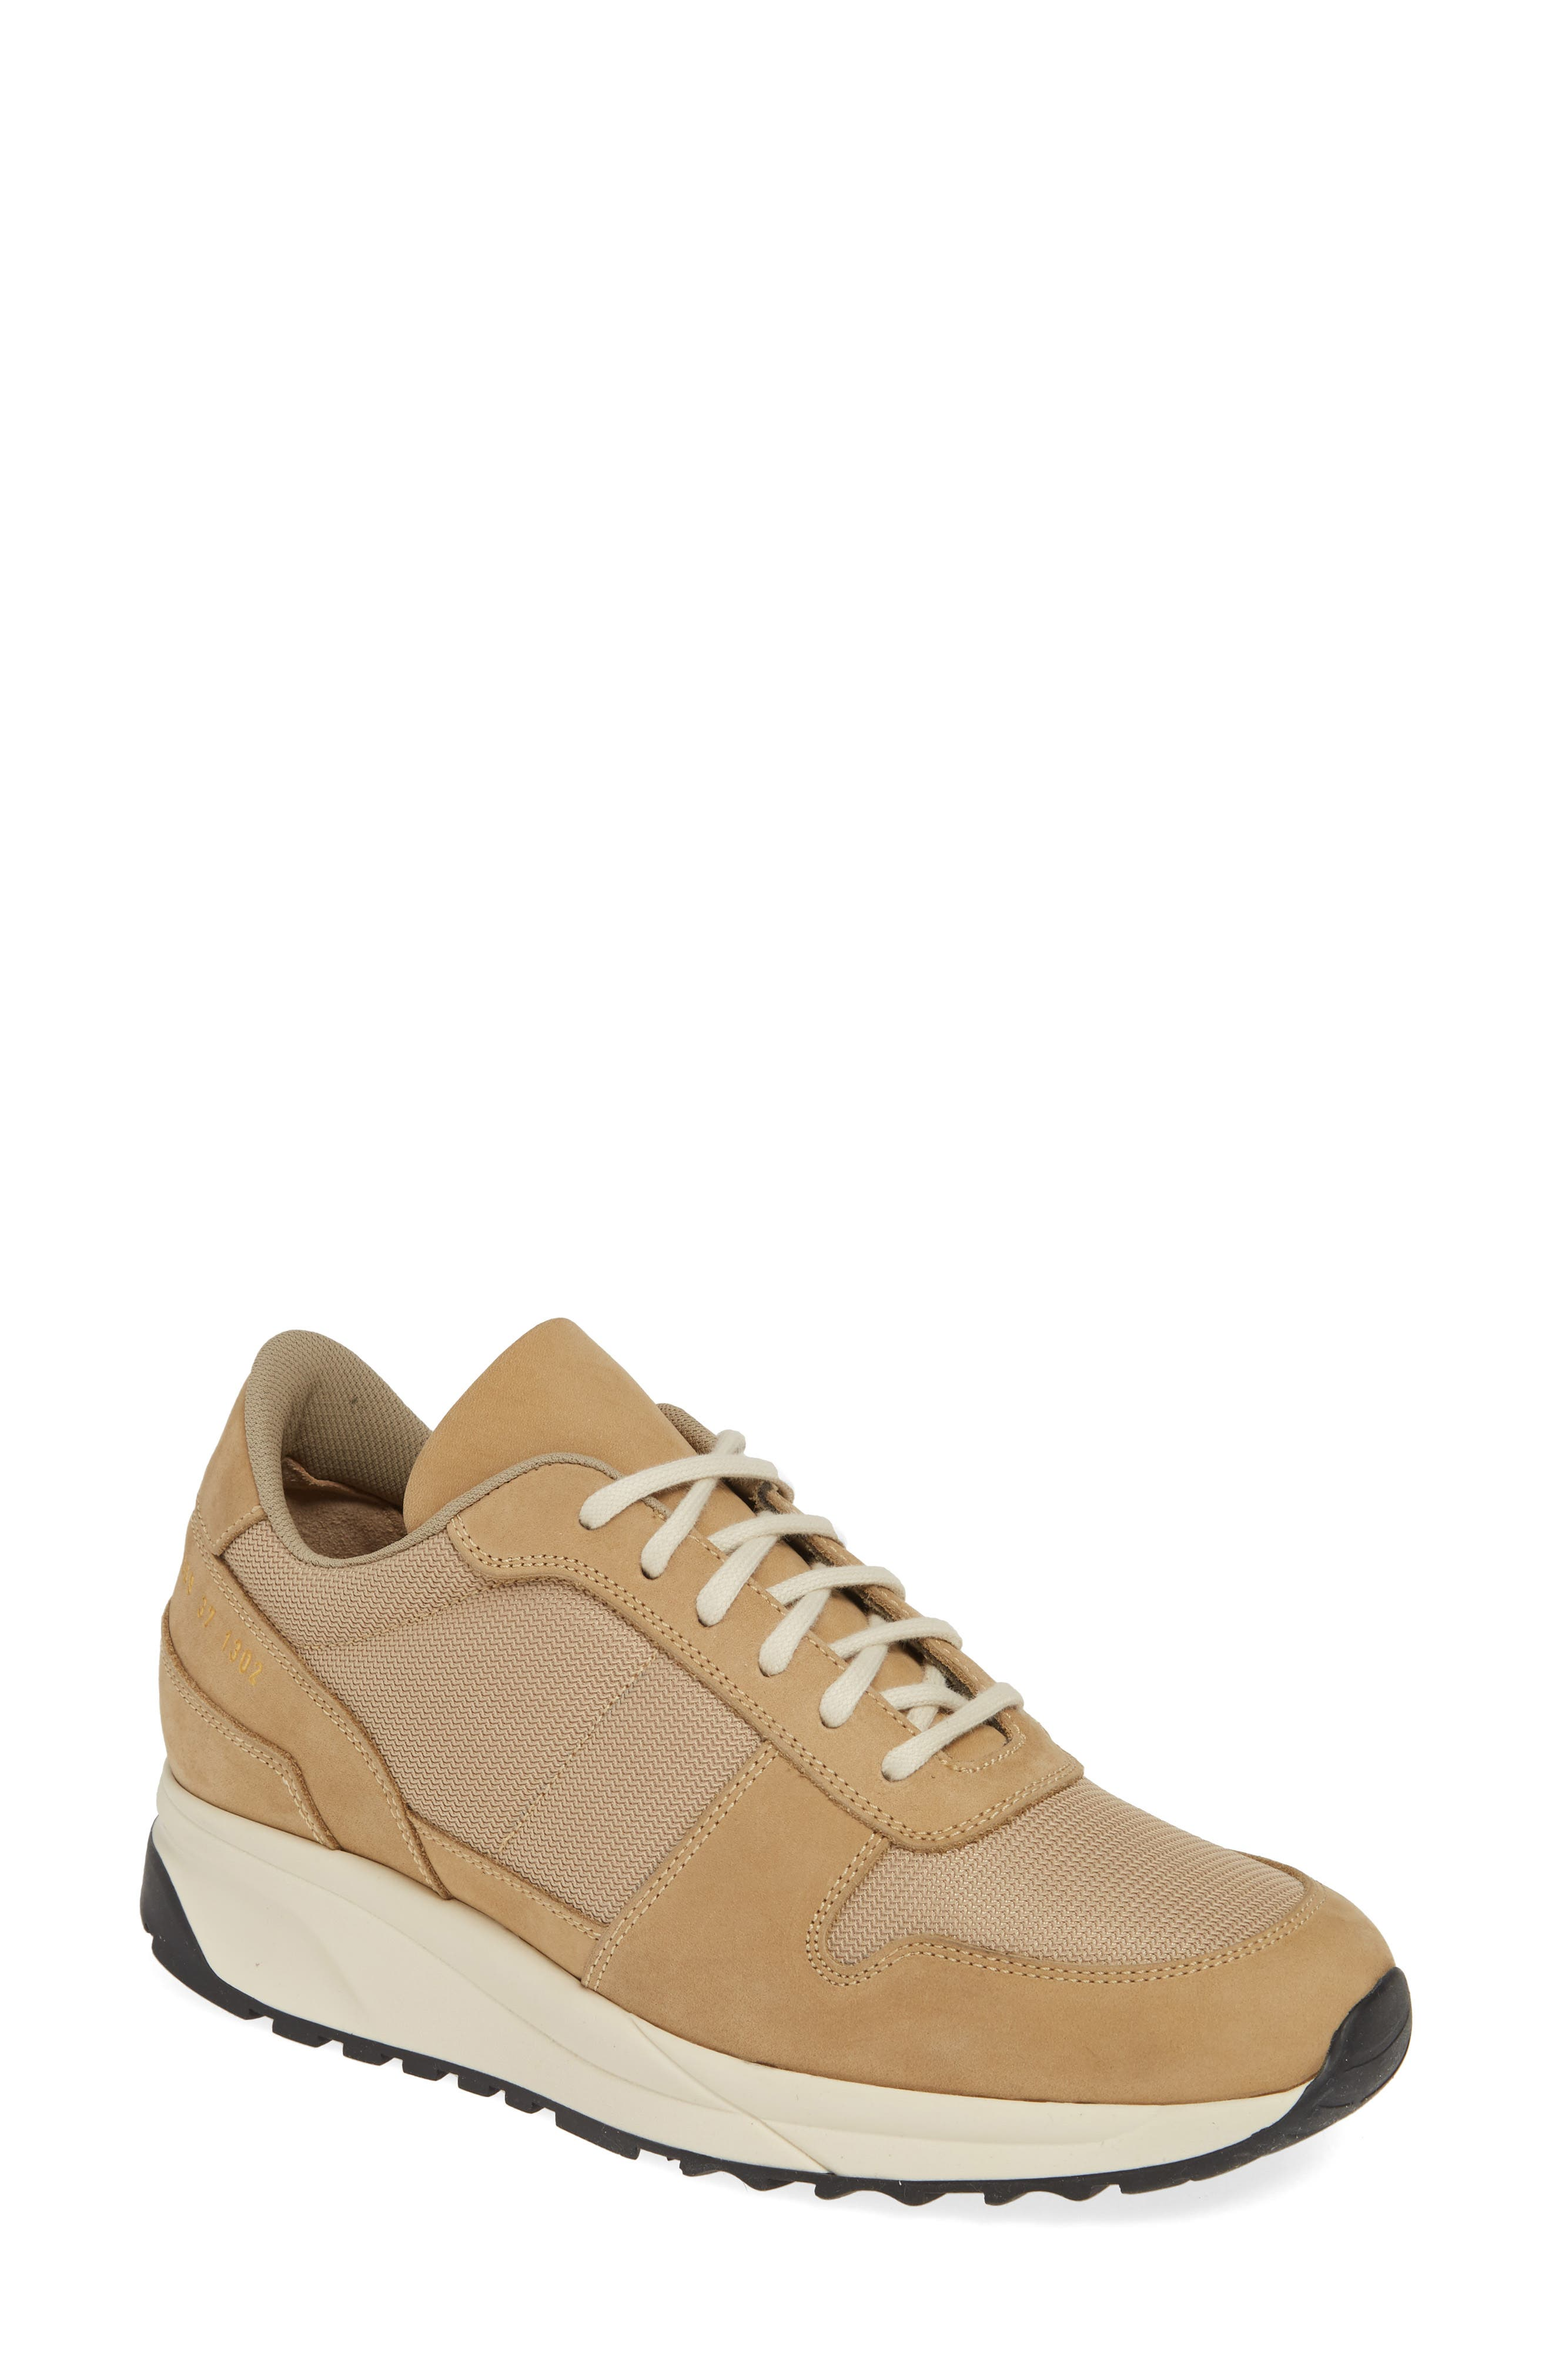 COMMON PROJECTS Track Vintage Sneaker, Main, color, TAN